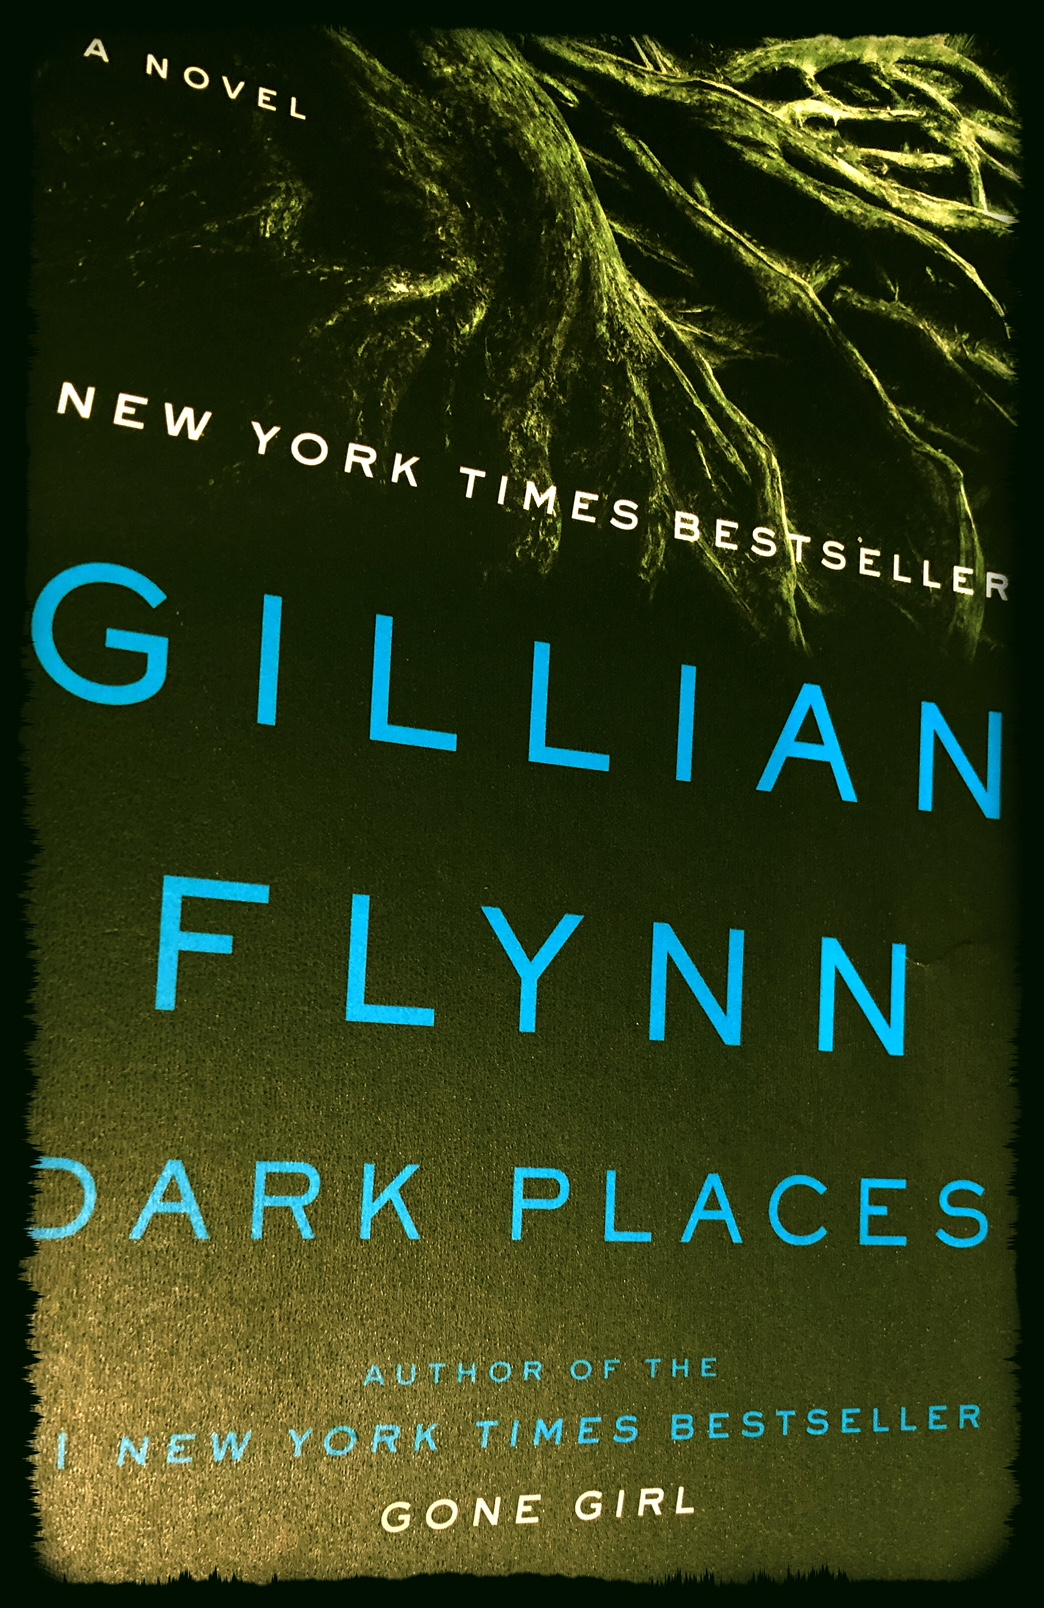 The Nitty Gritty: A Remotely Intellectual Review of Dark Places (by Gillian Flynn)